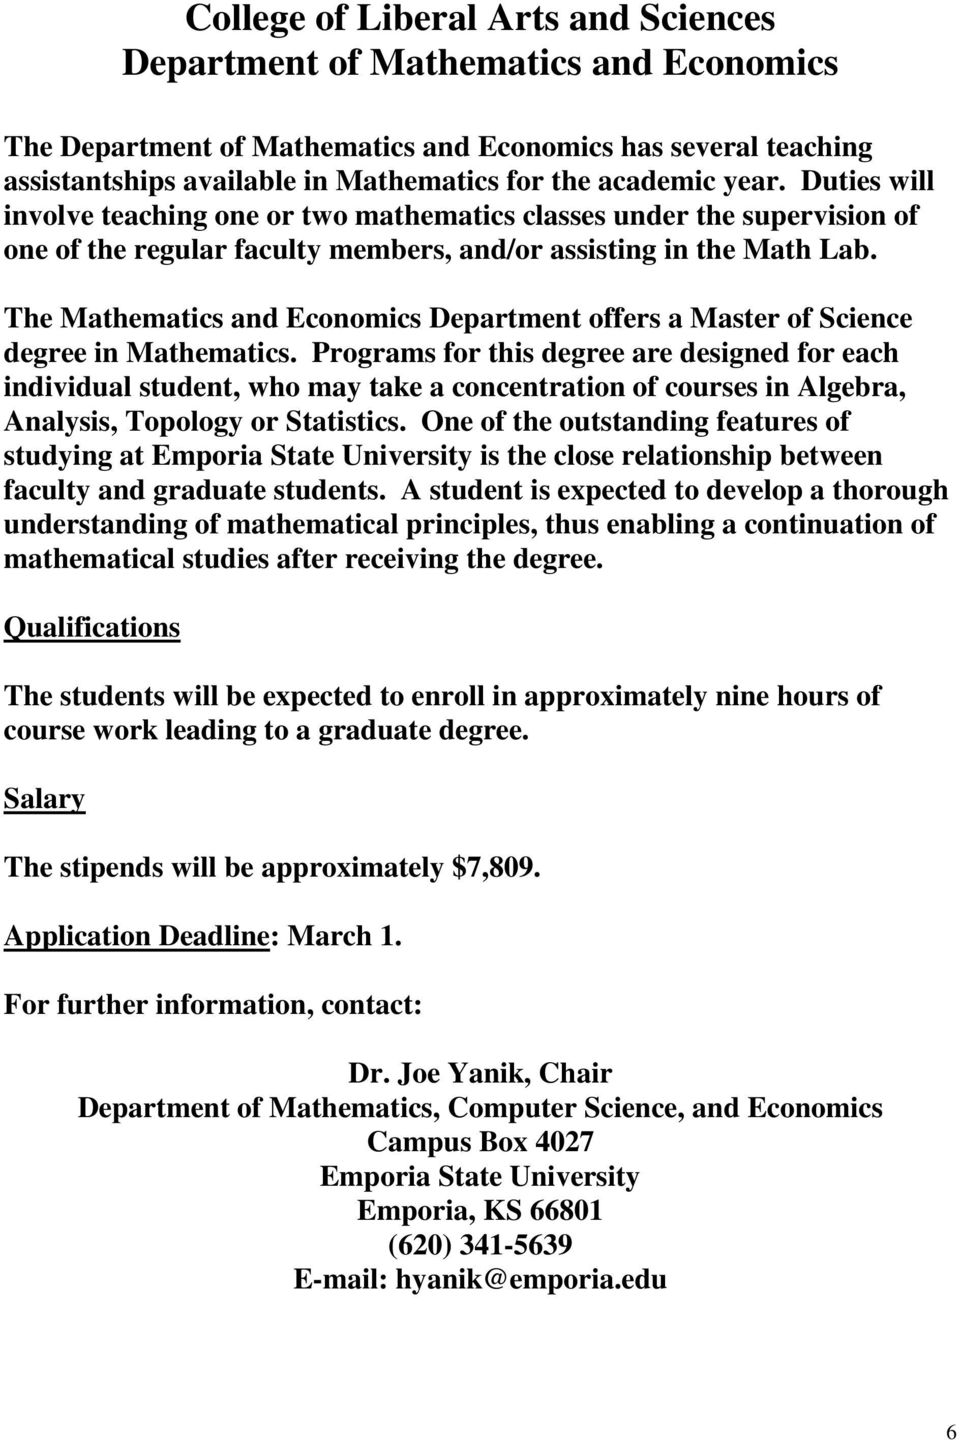 The Mathematics and Economics Department offers a Master of Science degree in Mathematics.